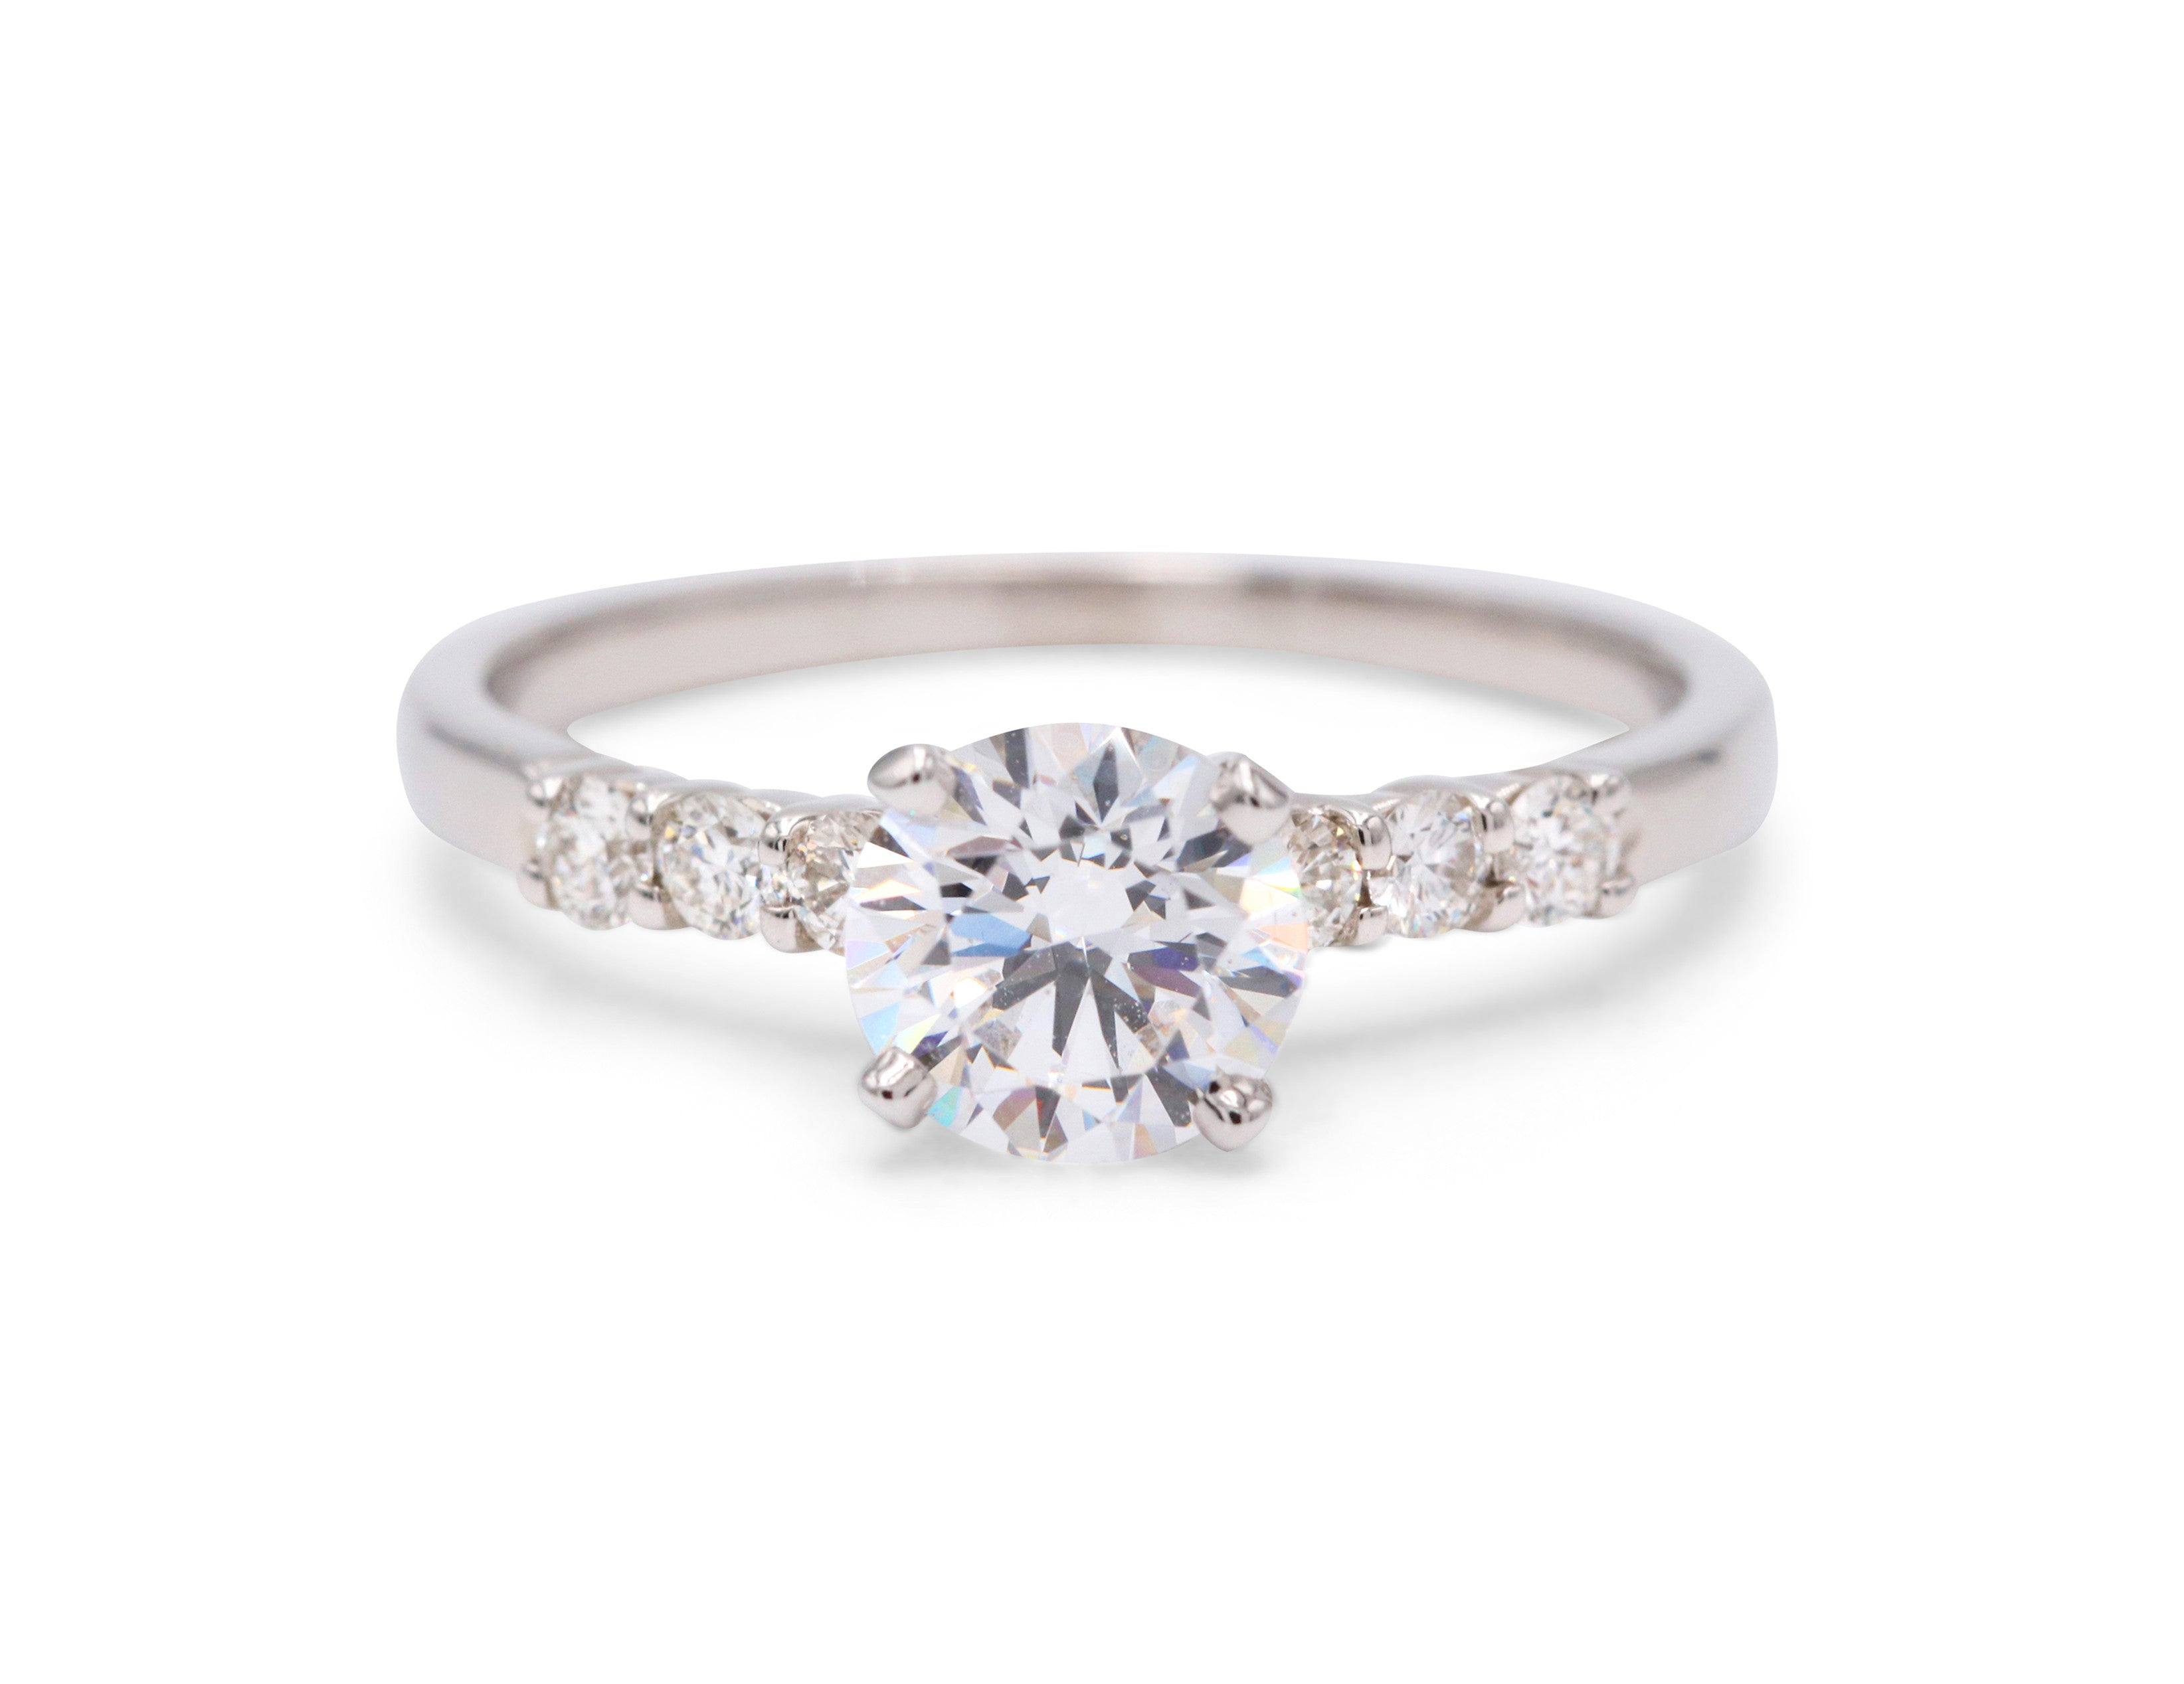 claw h solitaire ring engagement jewellery